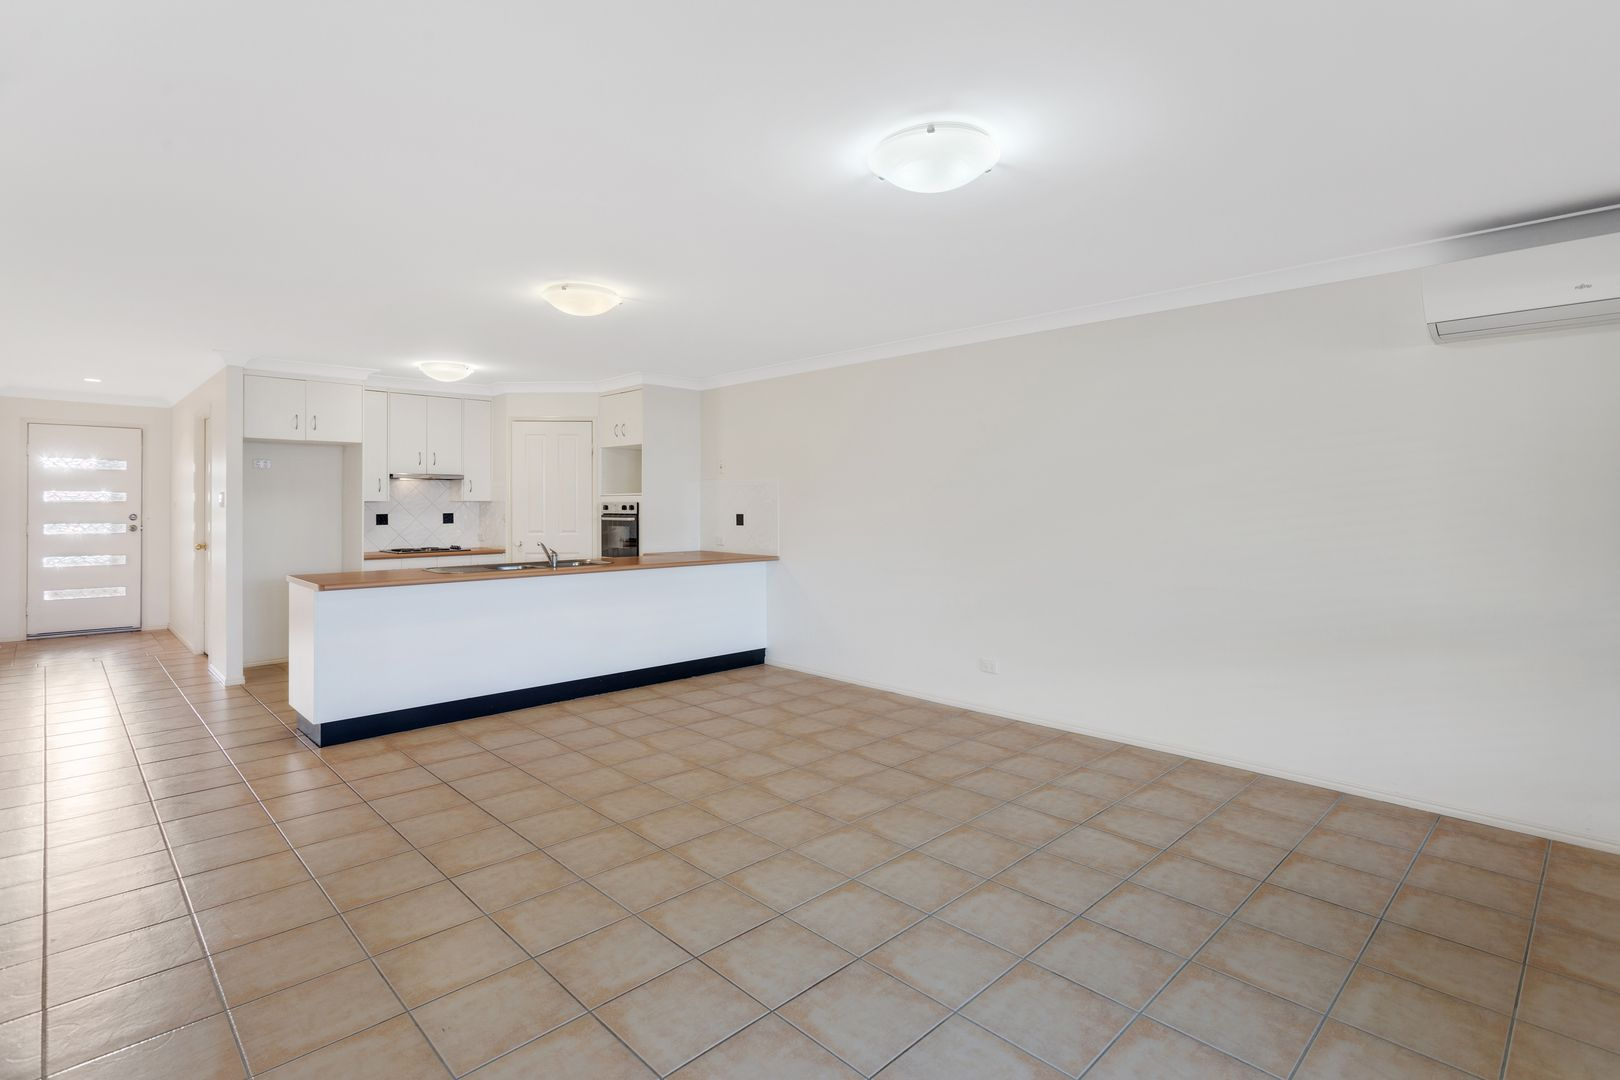 2/26 Hoepper Street, South Toowoomba QLD 4350, Image 1